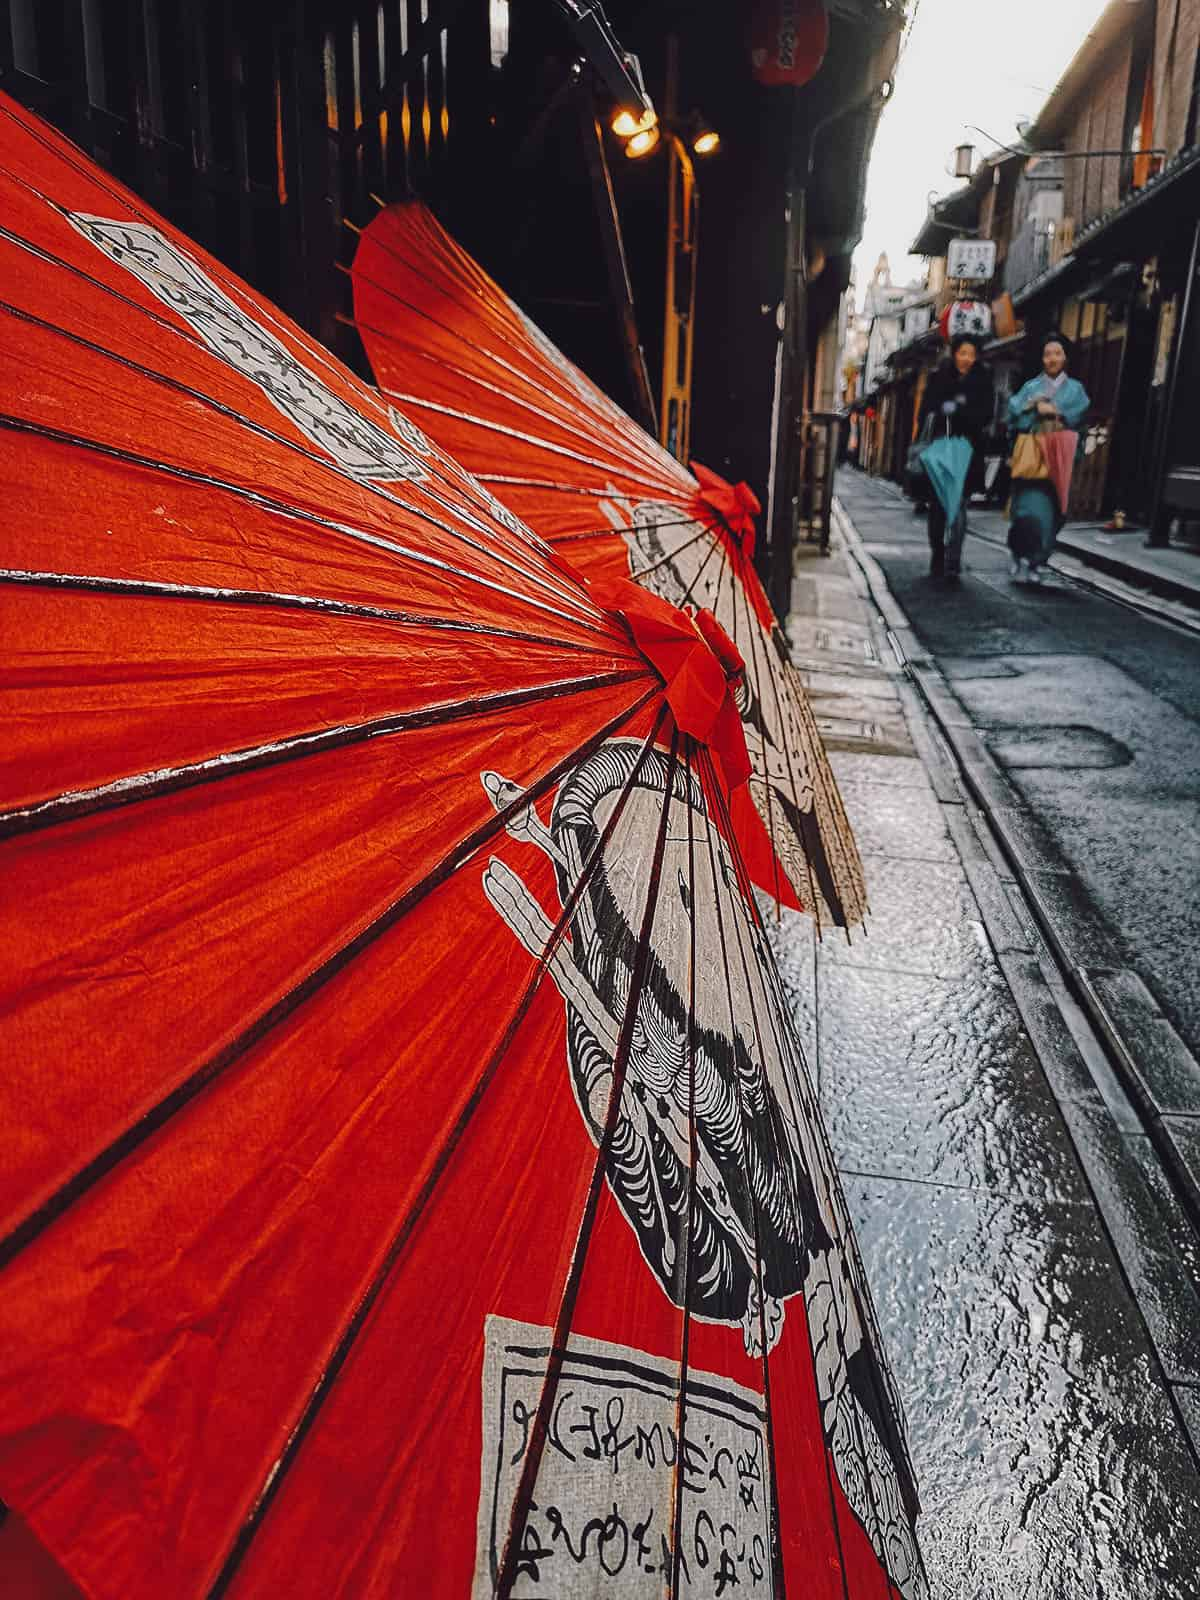 Red paper parasols in Pontocho Alley